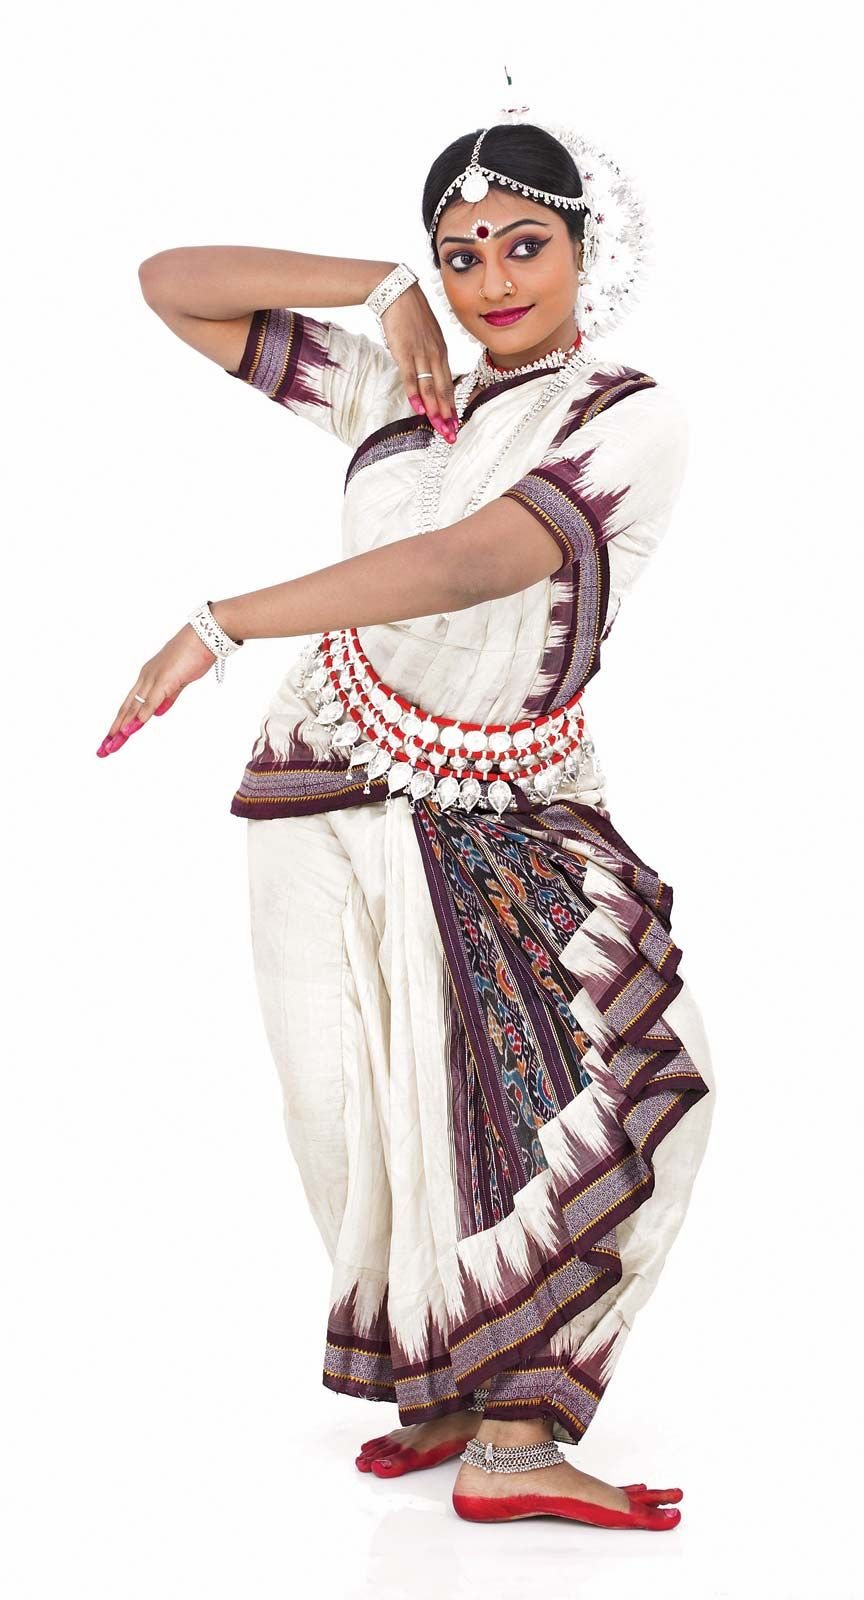 6 Classical Dances of India in 2020 Indian classical